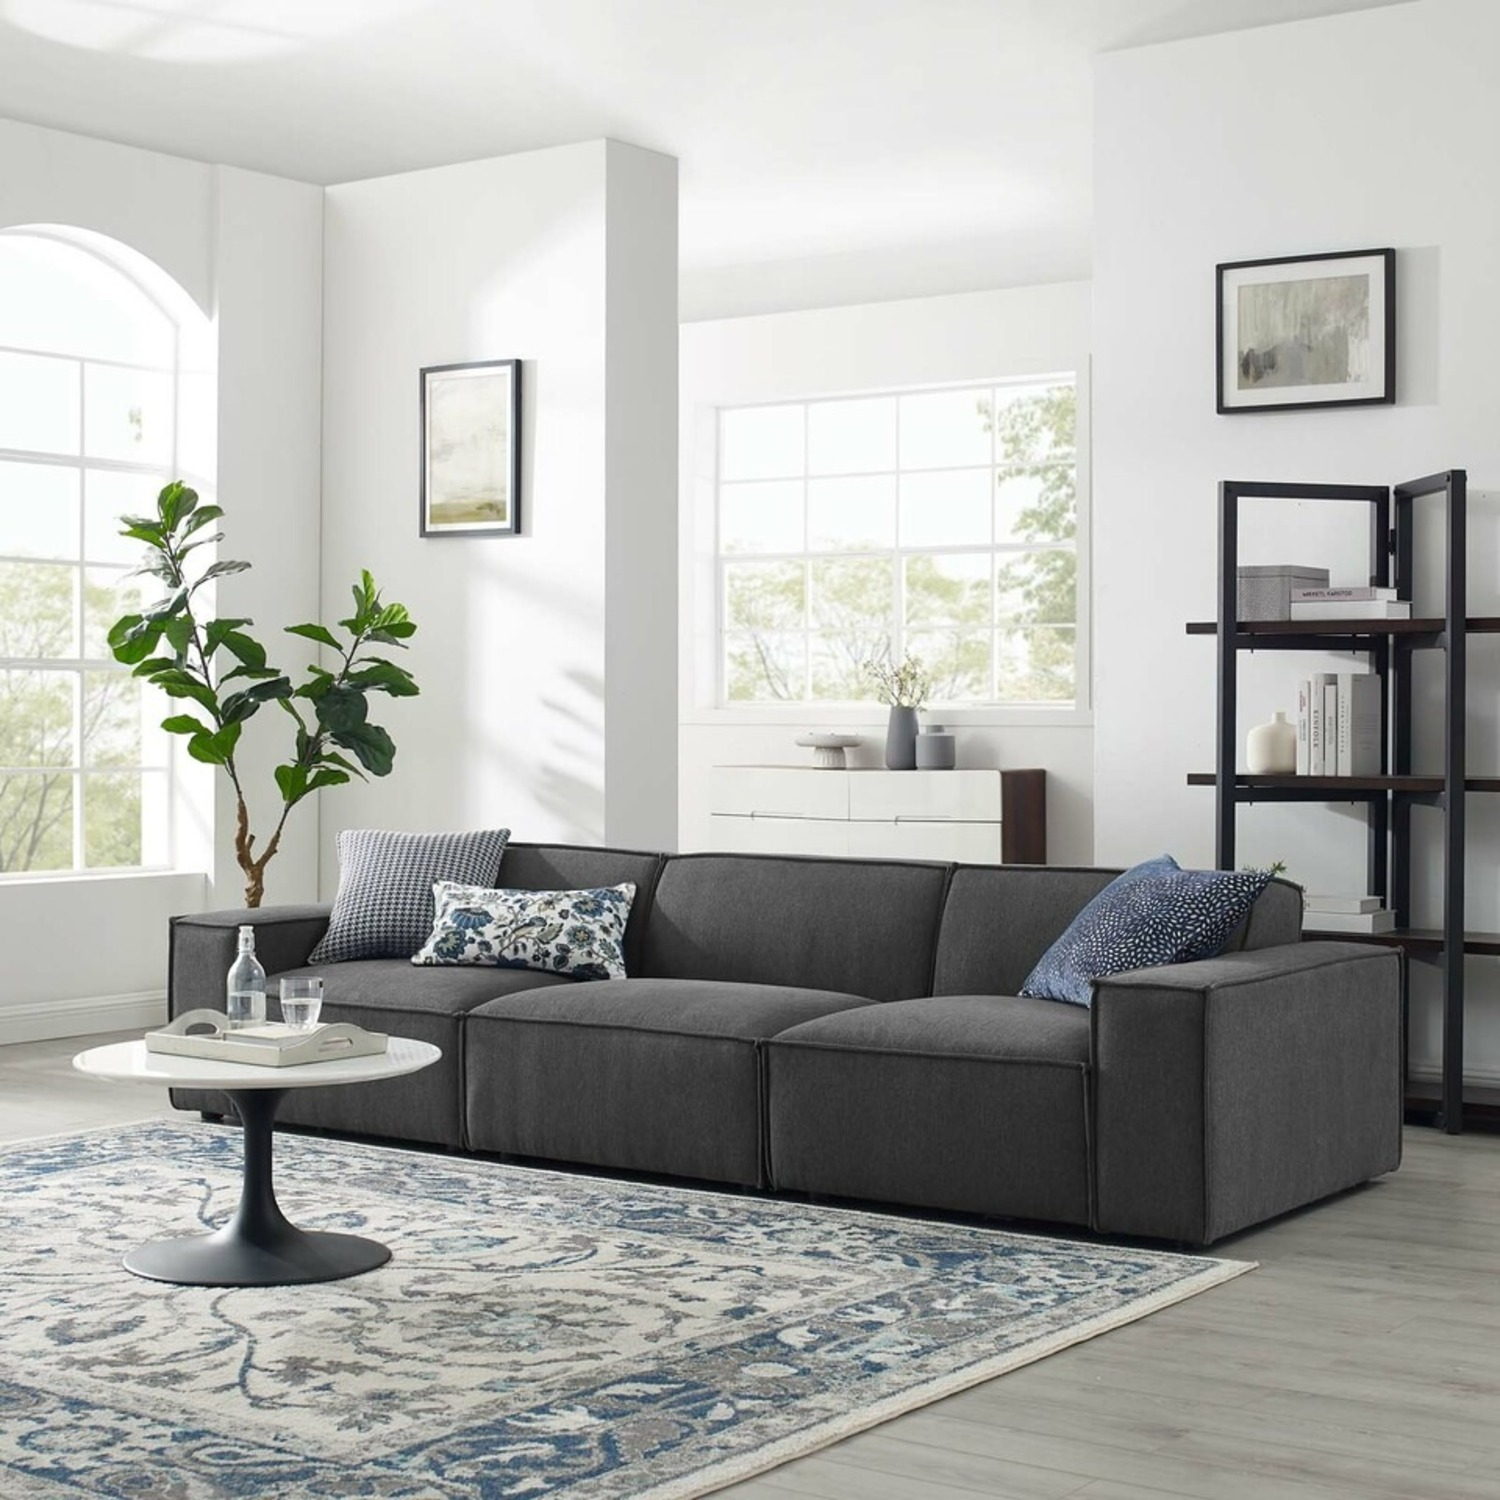 3-Piece Sectional Sofa In Charcoal Upholstery - image-11